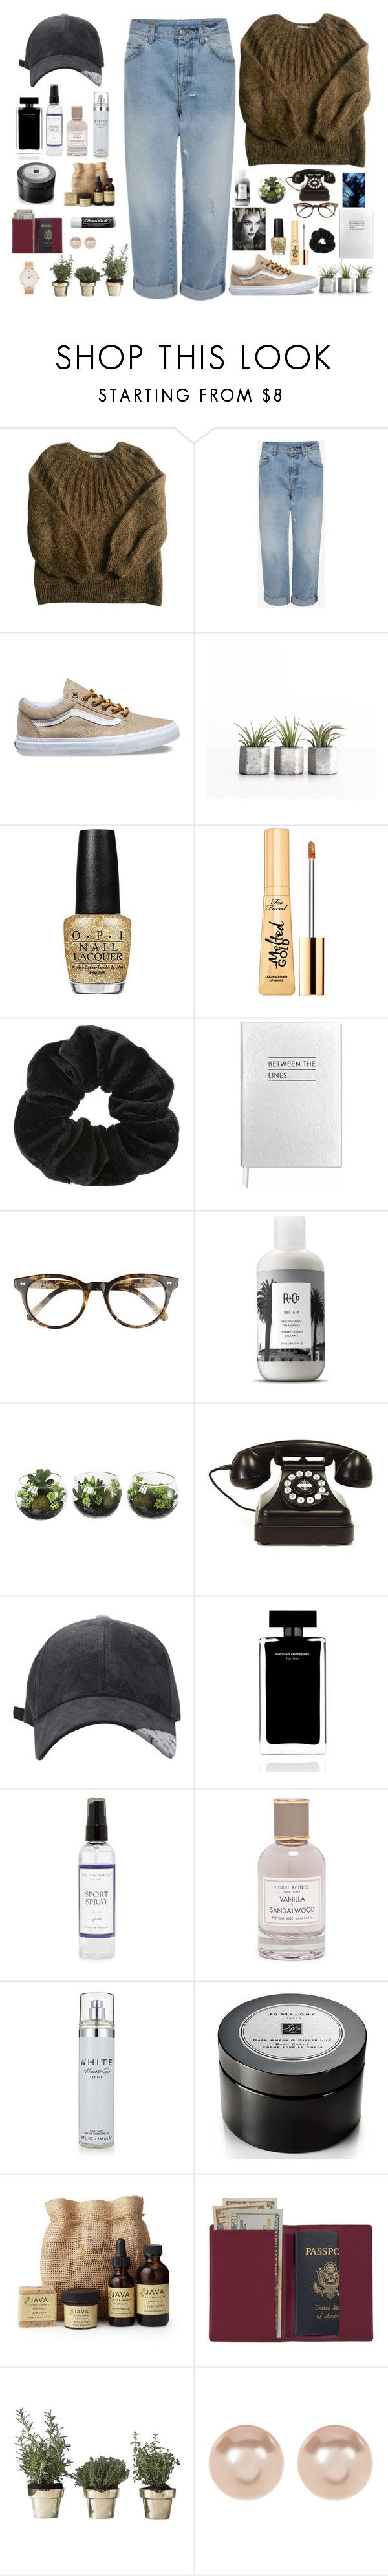 """"""":)"""" by siarabuck12 ❤ liked on Polyvore featuring Mes Demoiselles..., Vans, OPI, Too Faced Cosmetics, Miss Selfridge, Sloane Stationery, Corinne McCormack, R+Co, Home Decorators Collection and Narciso Rodriguez"""